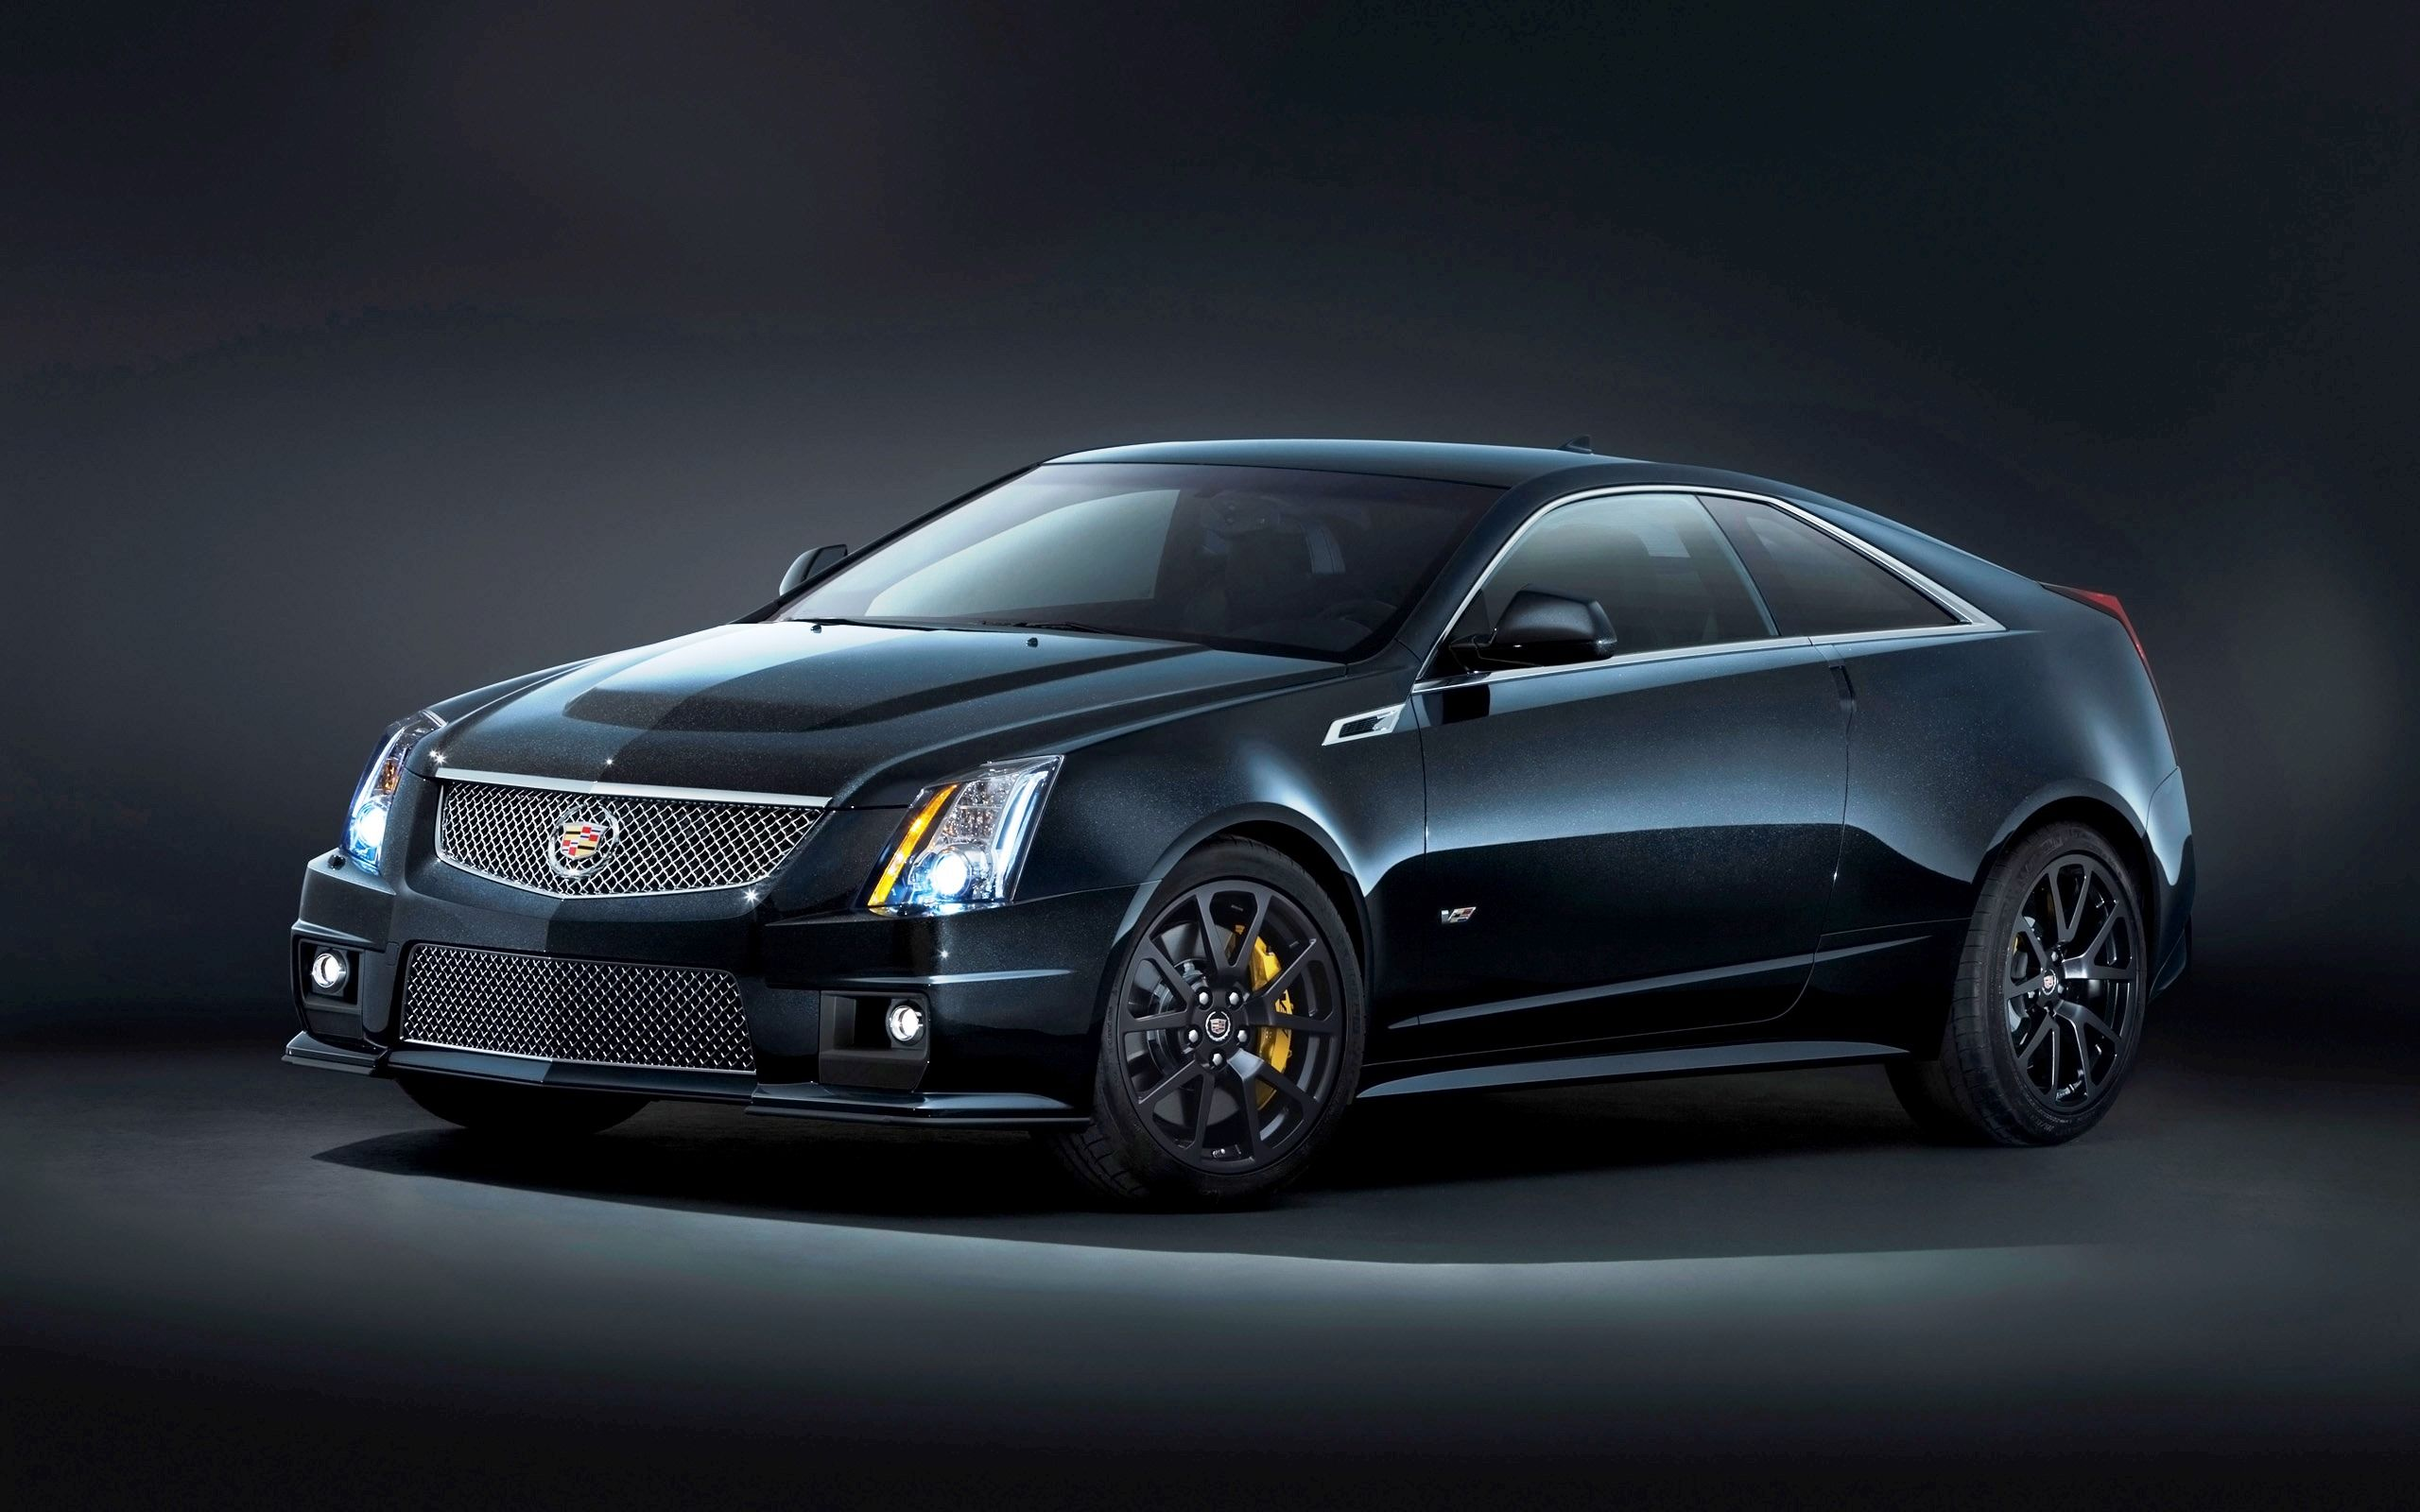 Pictures Of 2016 Cadillac Cts V Sport Photo Gallery Of The 2016